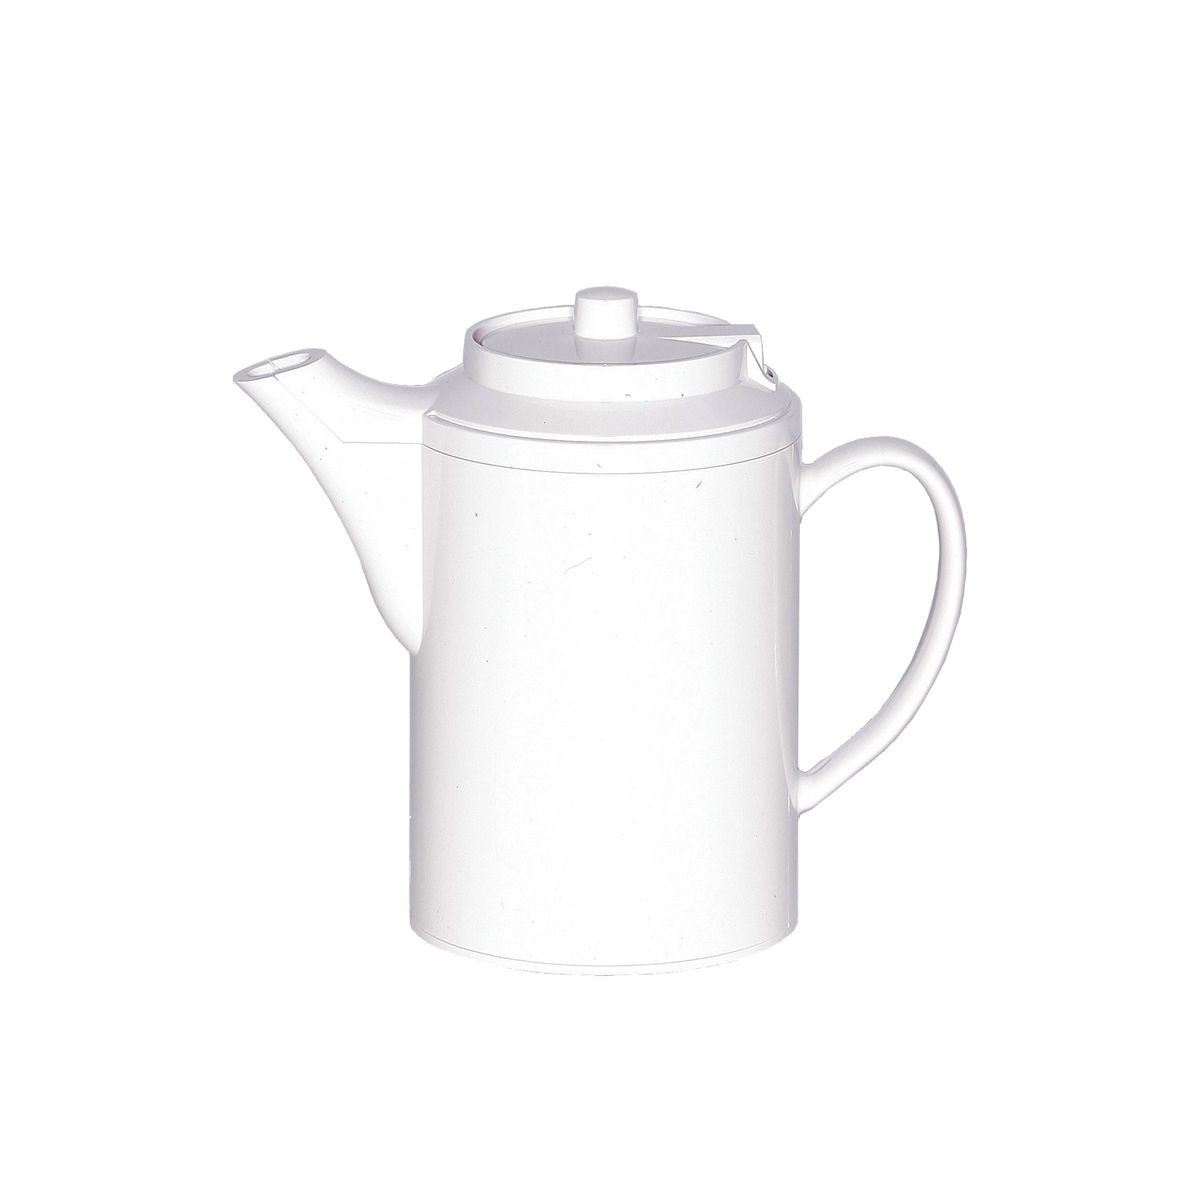 Service Ideas TS612WH Dripless Teapot with Baffled Spout, Self-Locking Lid, White 16 oz.